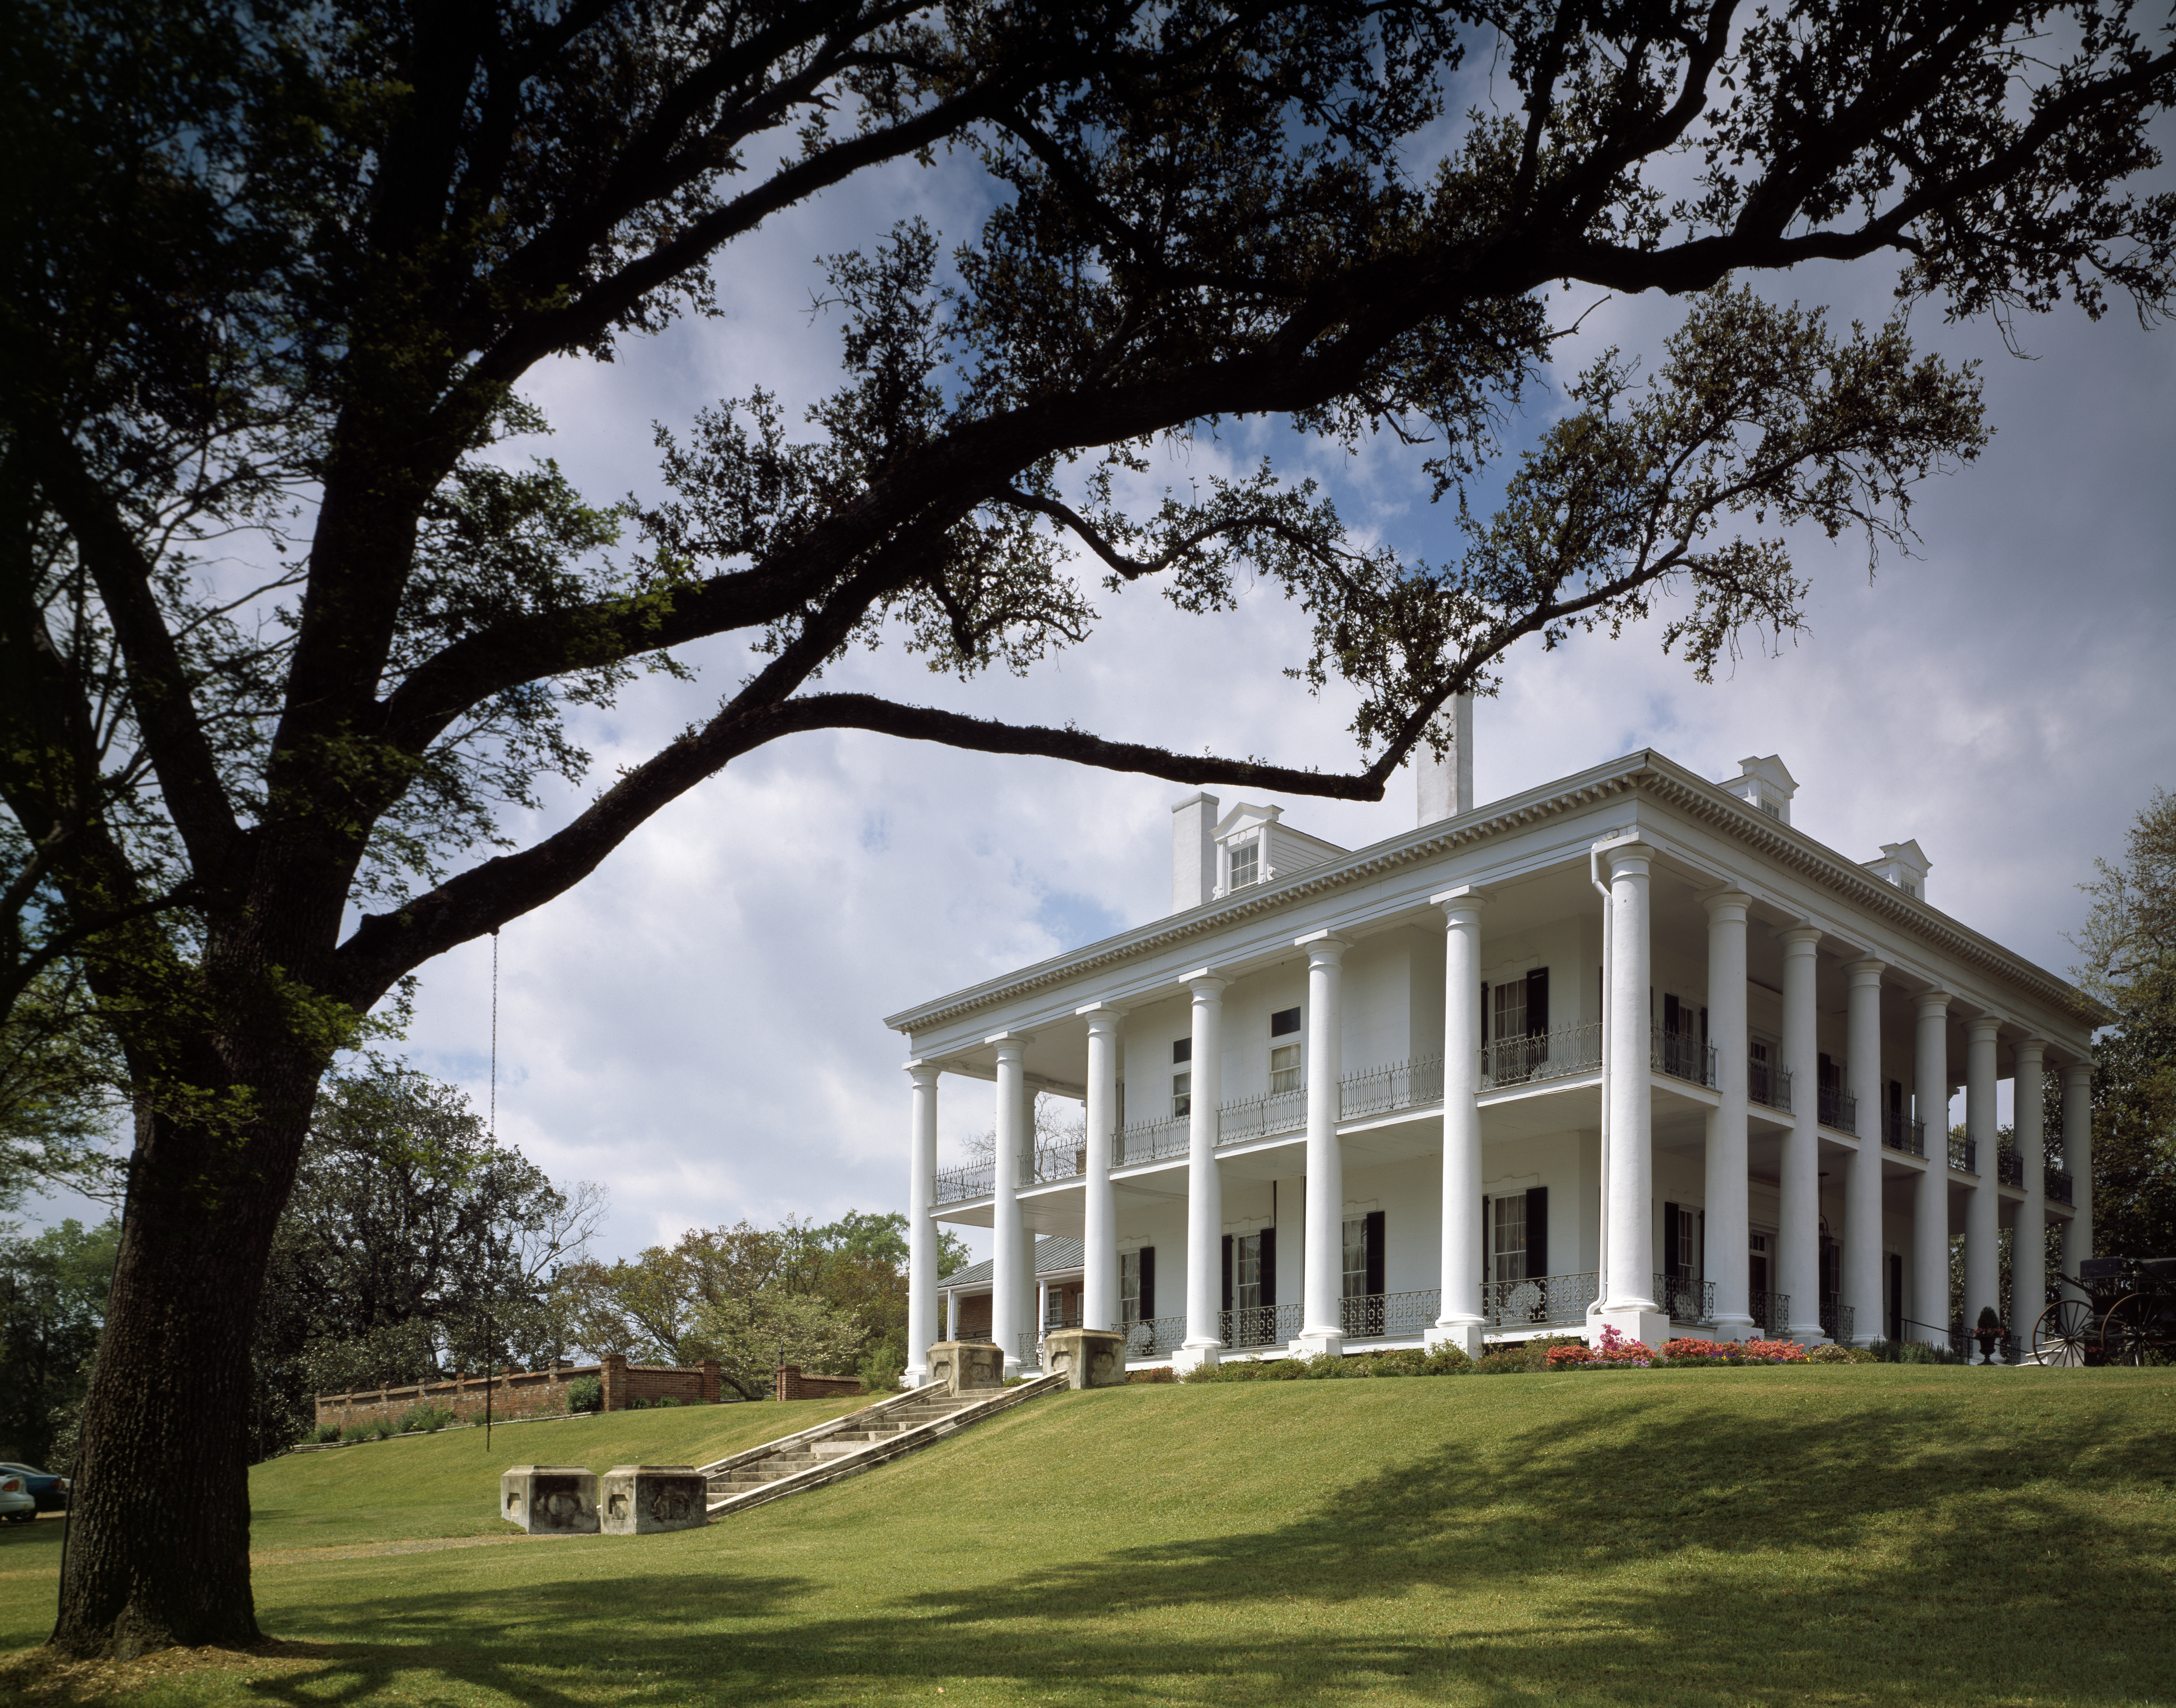 Dunleith - Wikipedia on old plantation homes, beautiful plantation homes, southern plantation homes, victorian plantation homes, shreveport plantation homes, opelousas plantation homes, jamestown plantation homes, virginia plantation homes, birmingham plantation homes, vicksburg plantation homes, magnolia plantation homes, memphis plantation homes, nashville plantation homes, denver plantation homes, brunswick plantation homes, mobile plantation homes, jonesboro plantation homes, tennessee plantation homes, small plantation homes, indiana plantation homes,